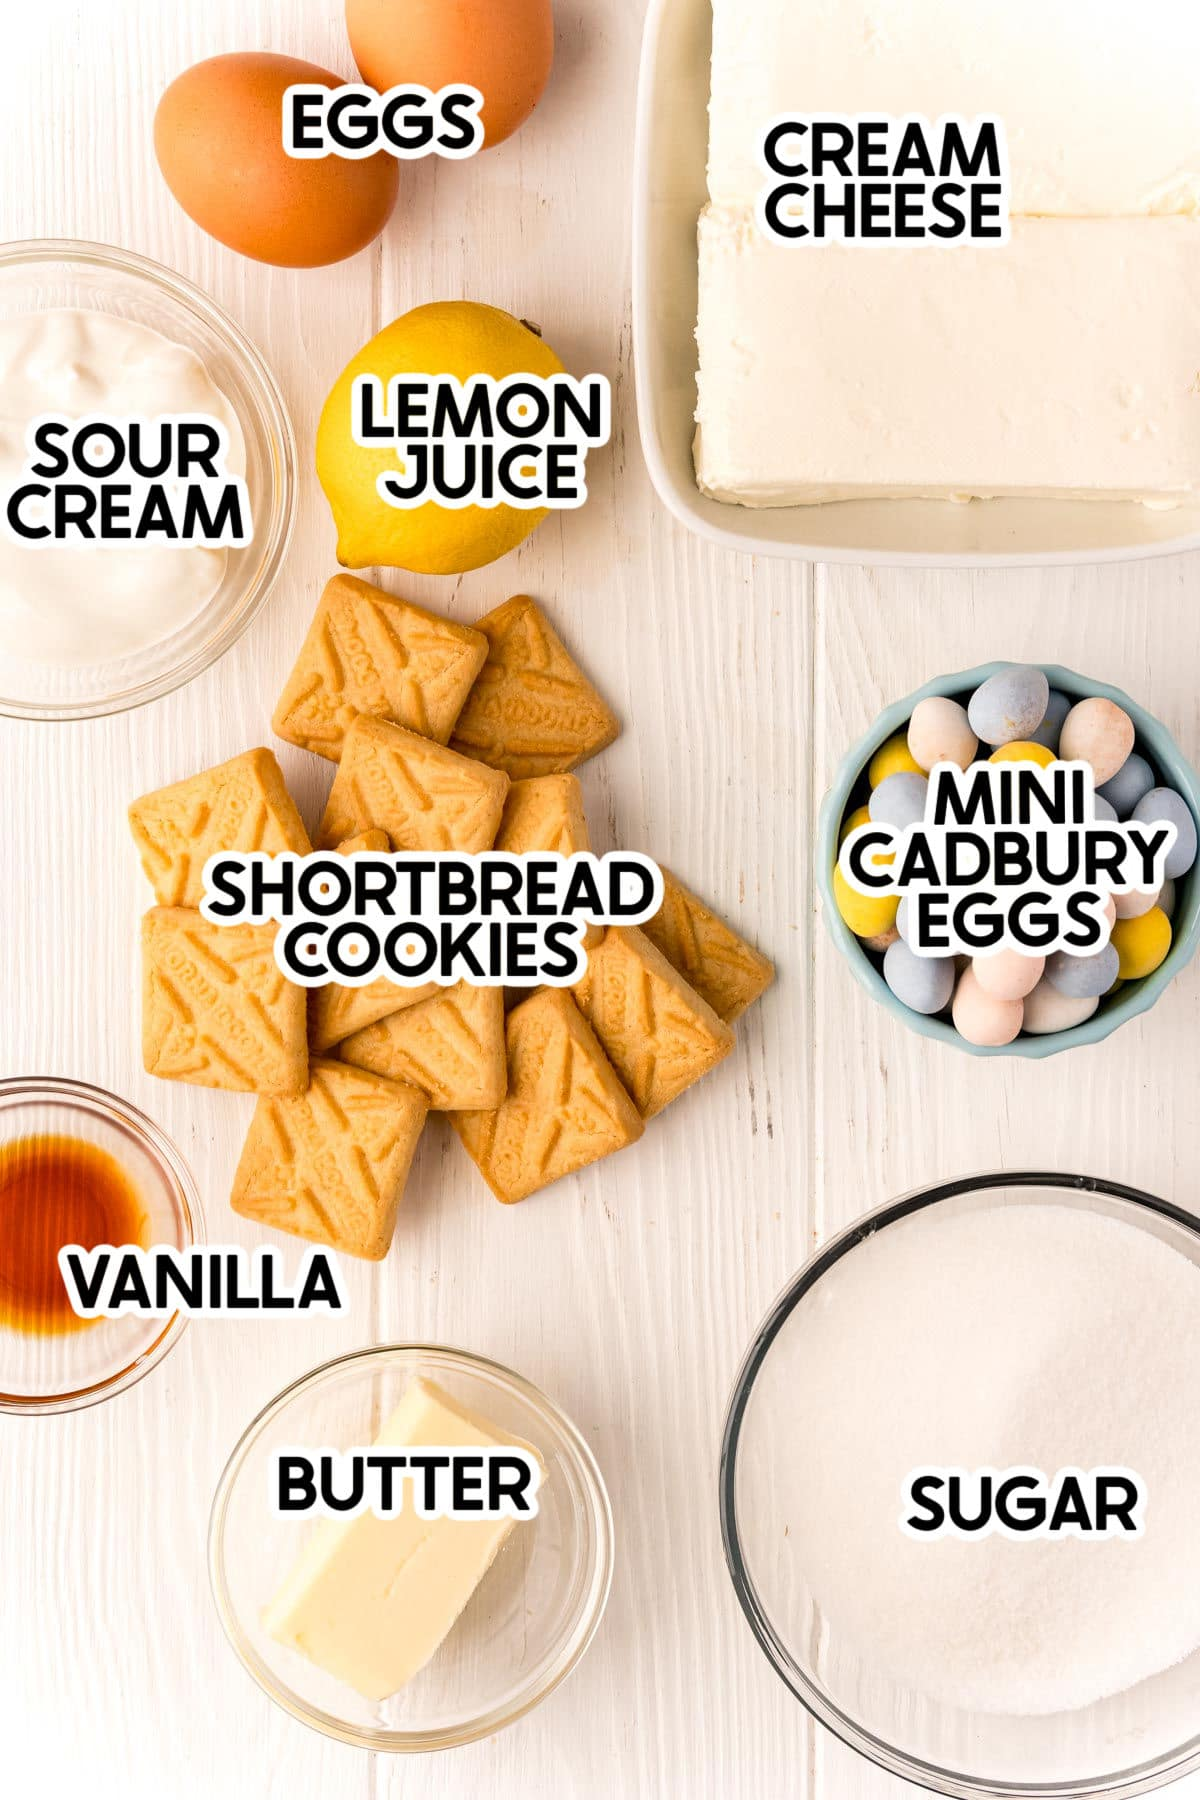 ingredients needed to make mini egg cheesecake with labels